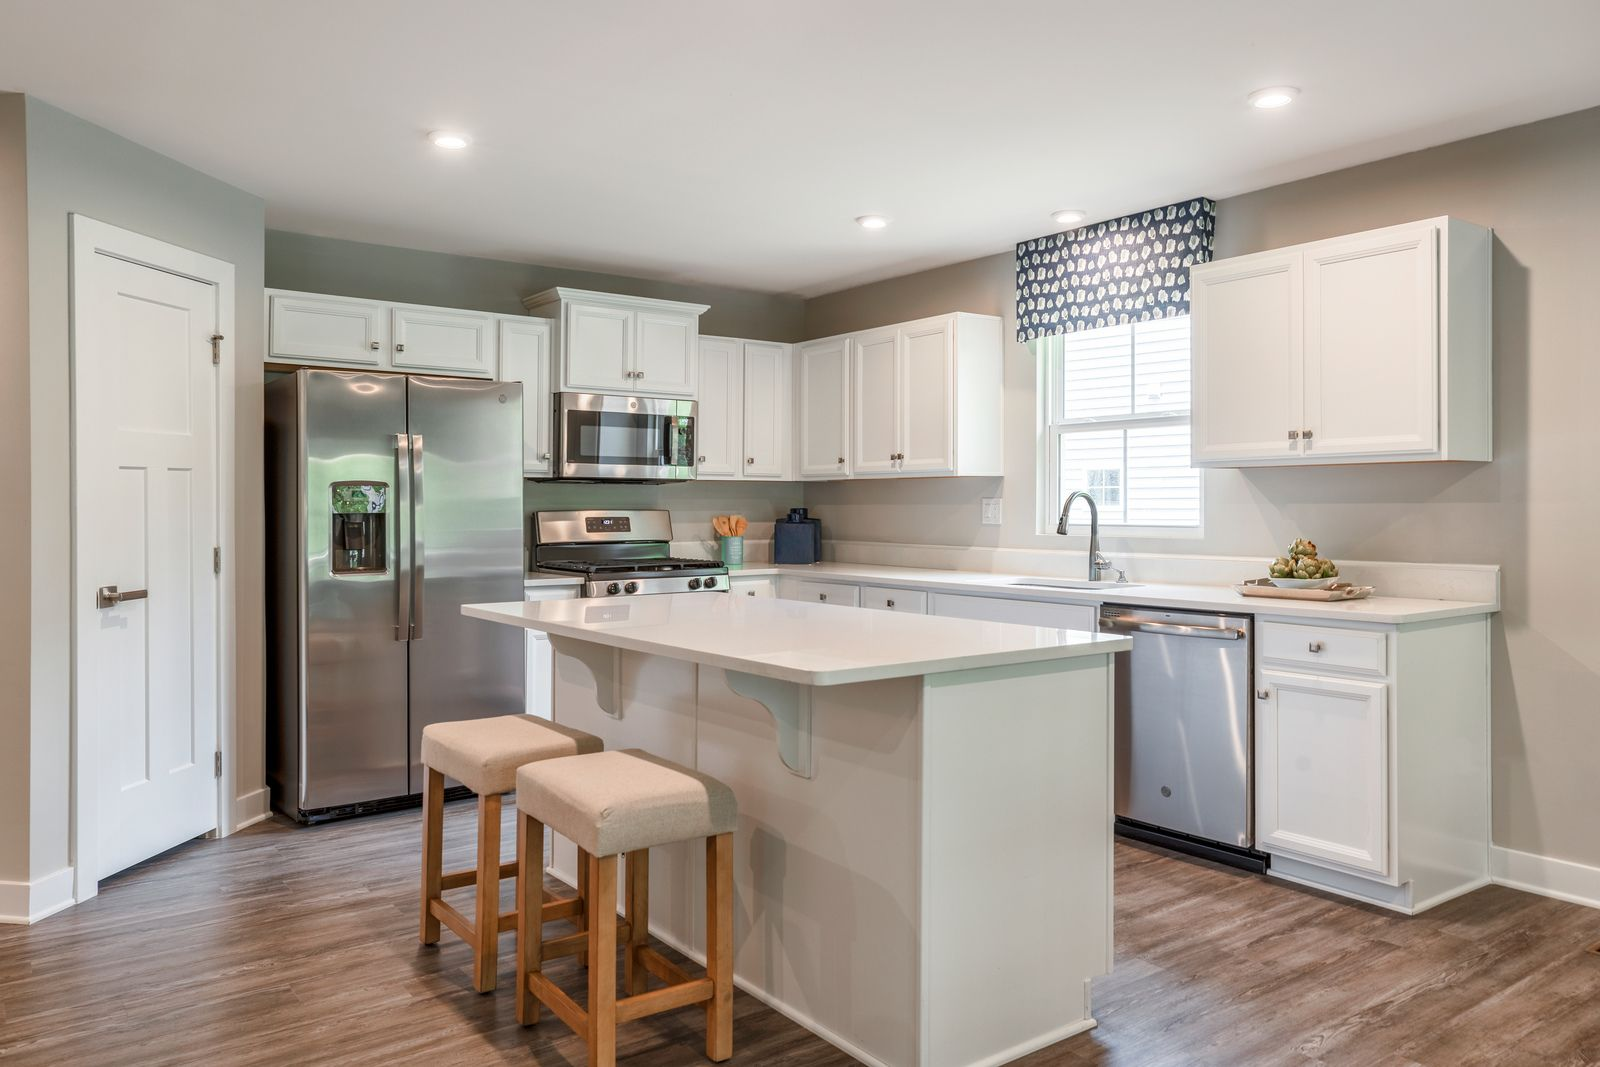 Kitchen featured in the Dominica Spring By Ryan Homes in Akron, OH